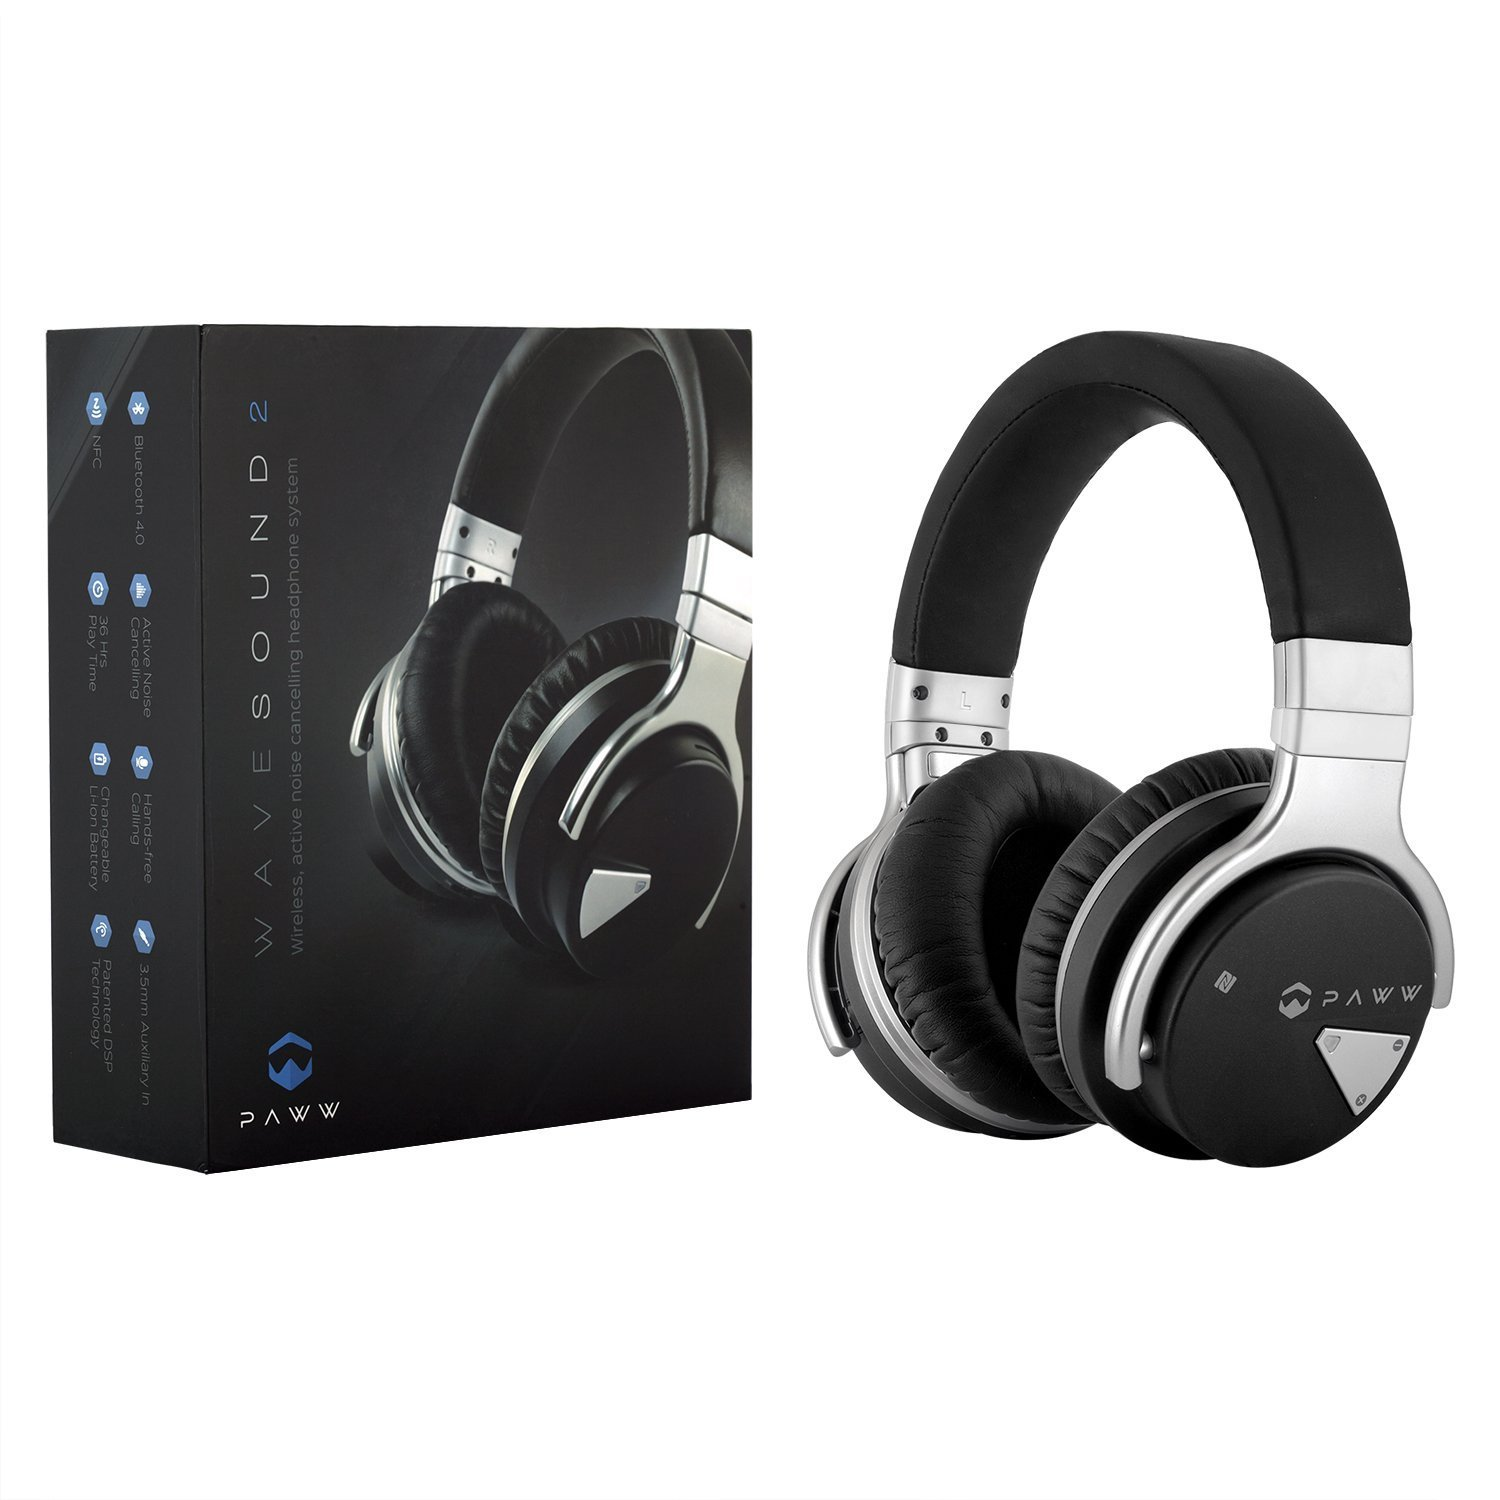 Paww Over Ear Headphones - Paww WaveSound 2 - Active Noise Cancelling Bluetooth Headphones with Custom Carry Case - Black